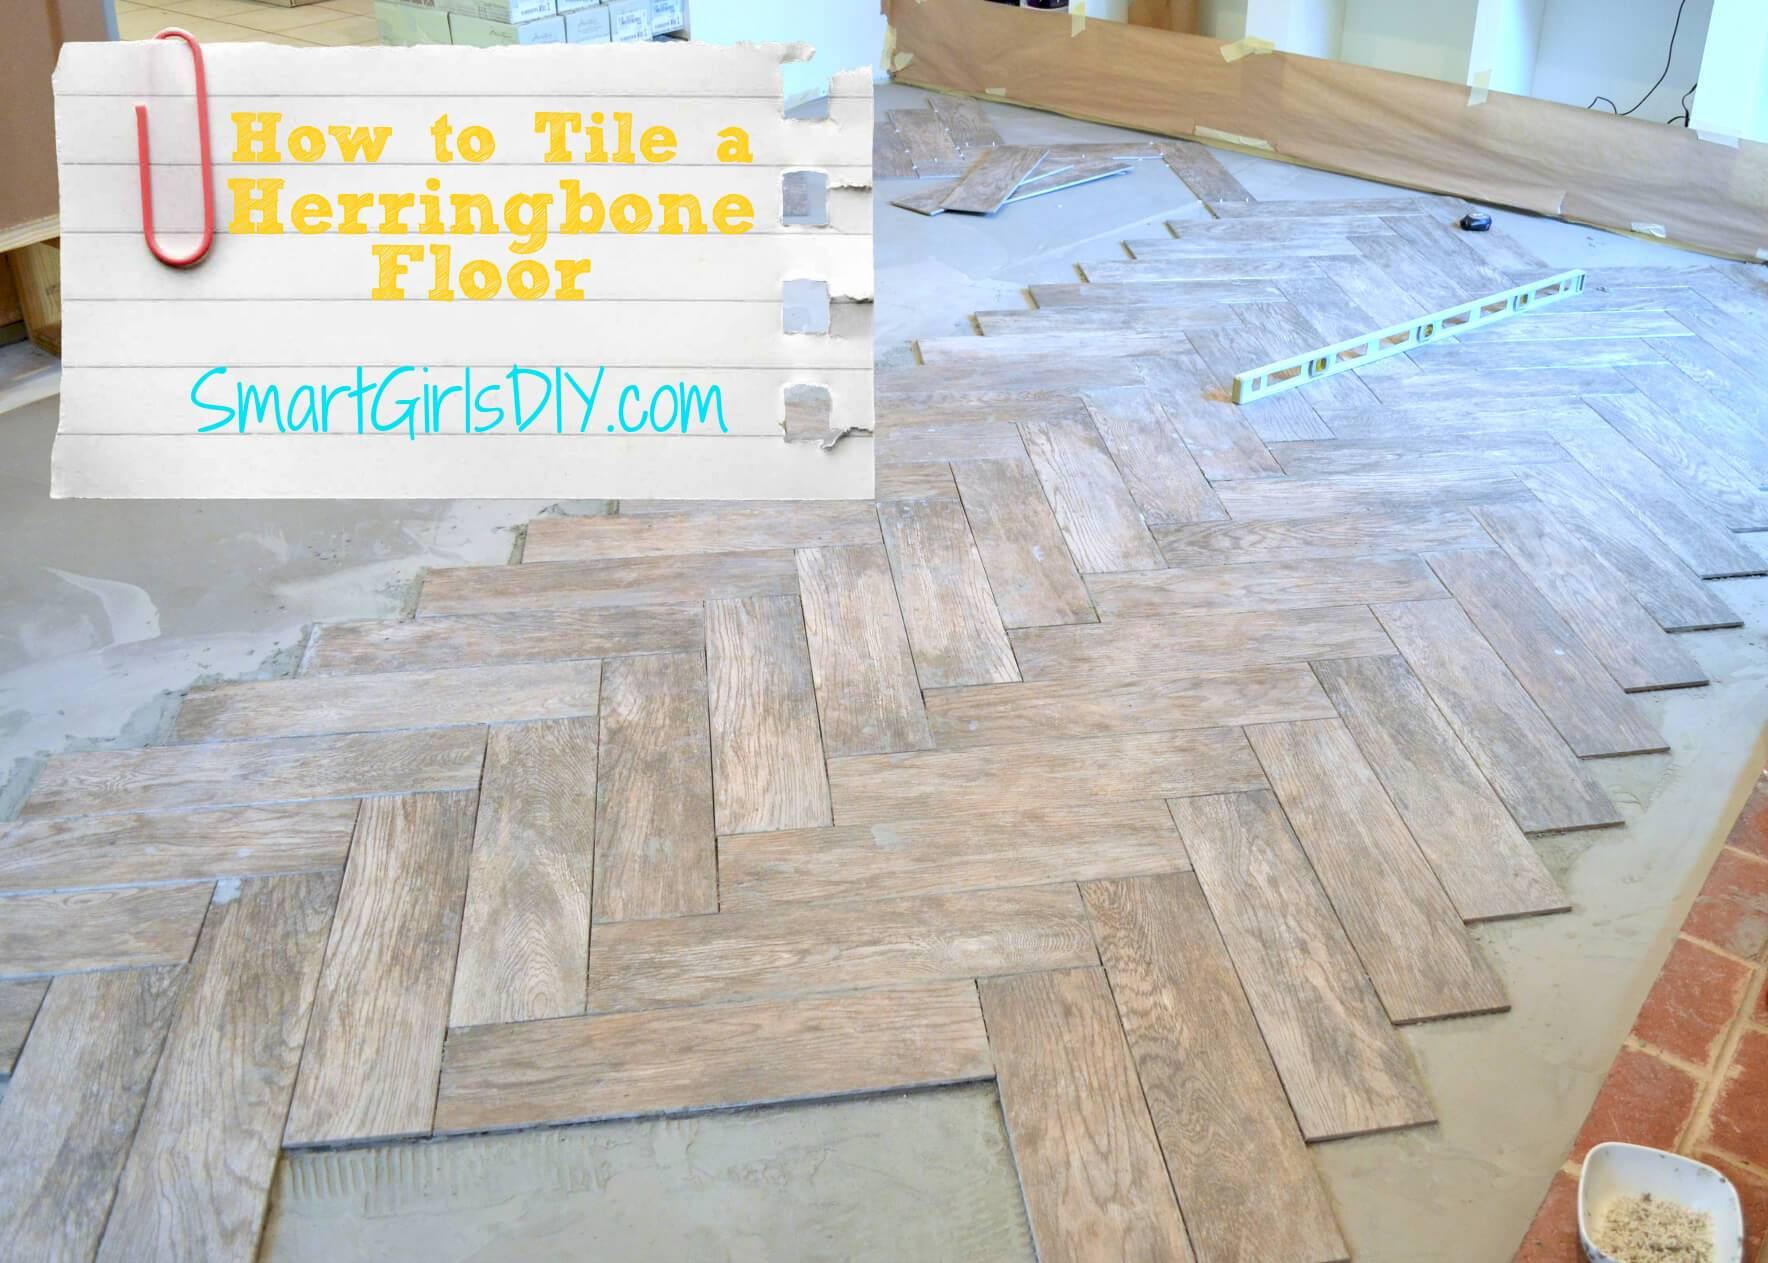 hardwood floor installation layout of how to tile a herringbone floor family room 10 within how to tile a herringbone floor yourself